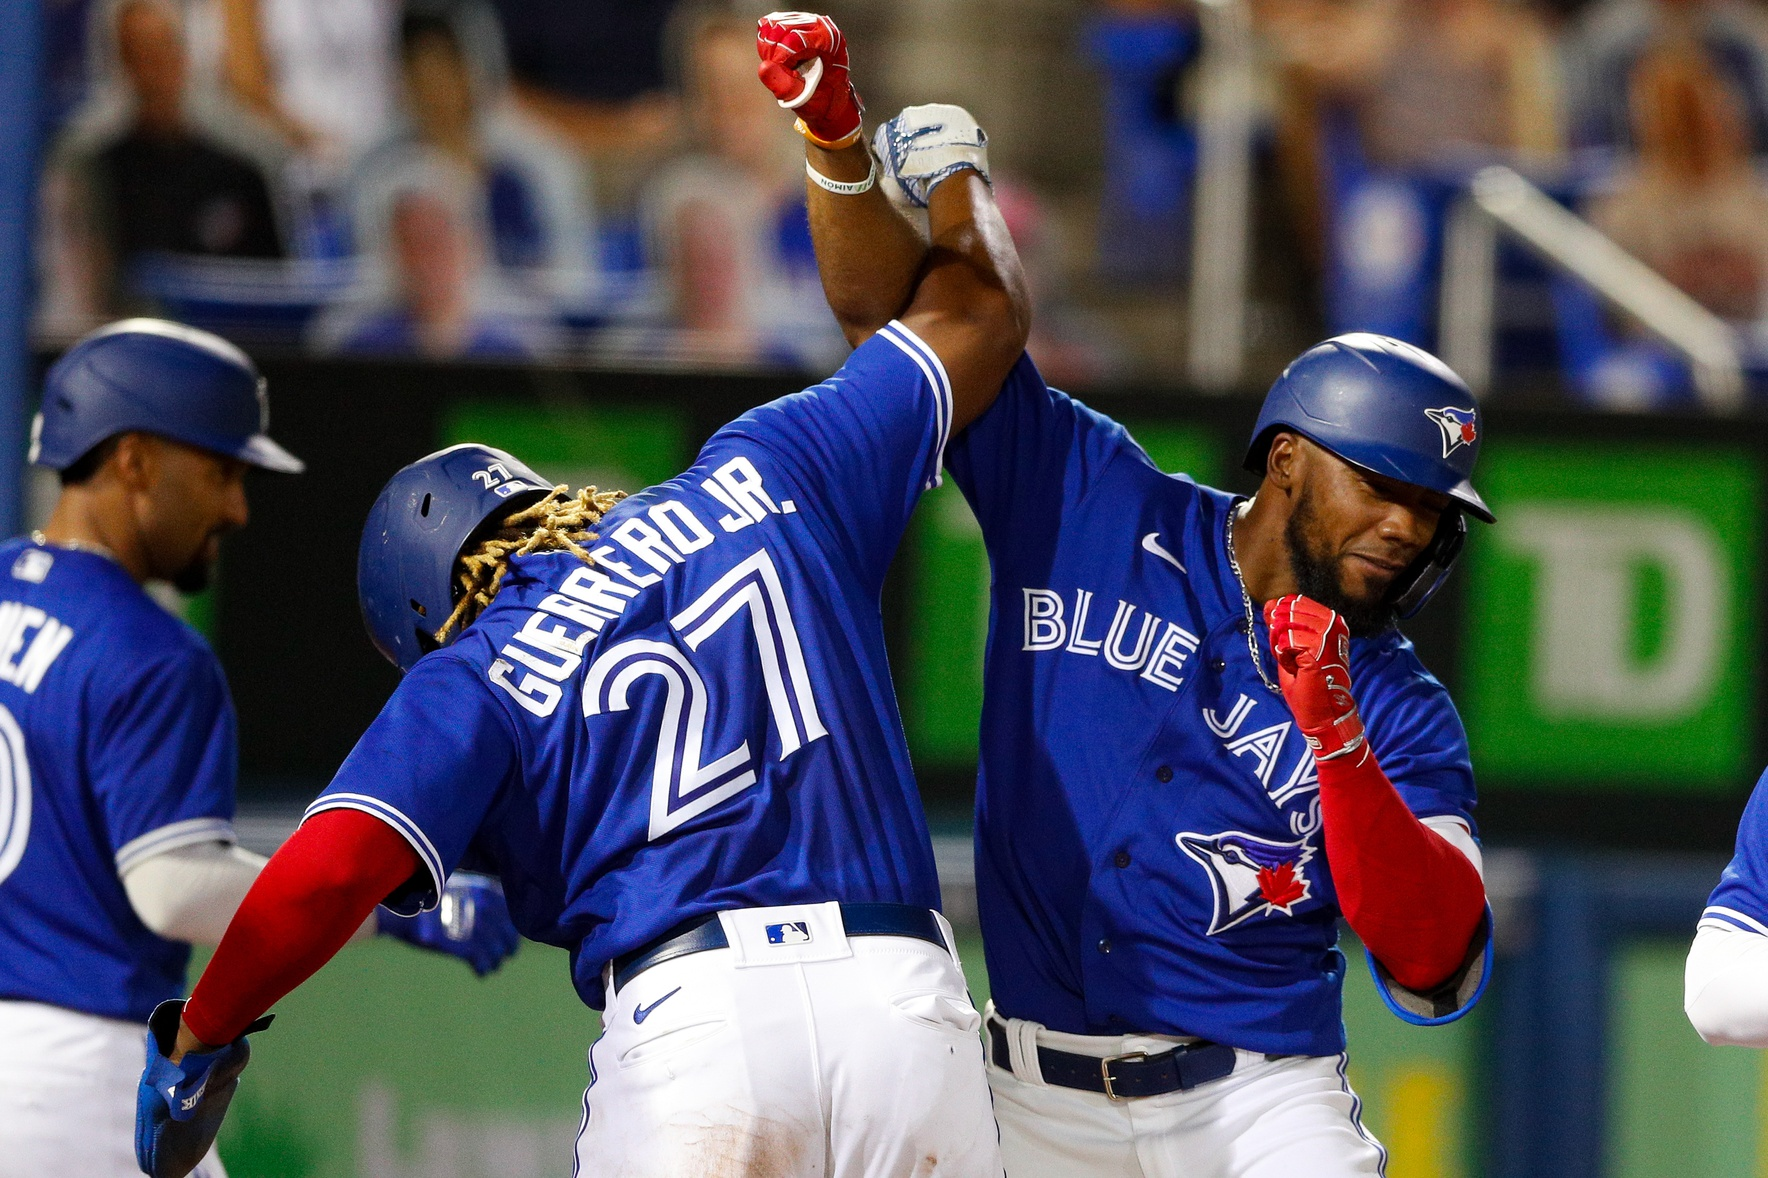 Phillies vs Blue Jays 05/14/21 – Odds and MLB Betting Trends